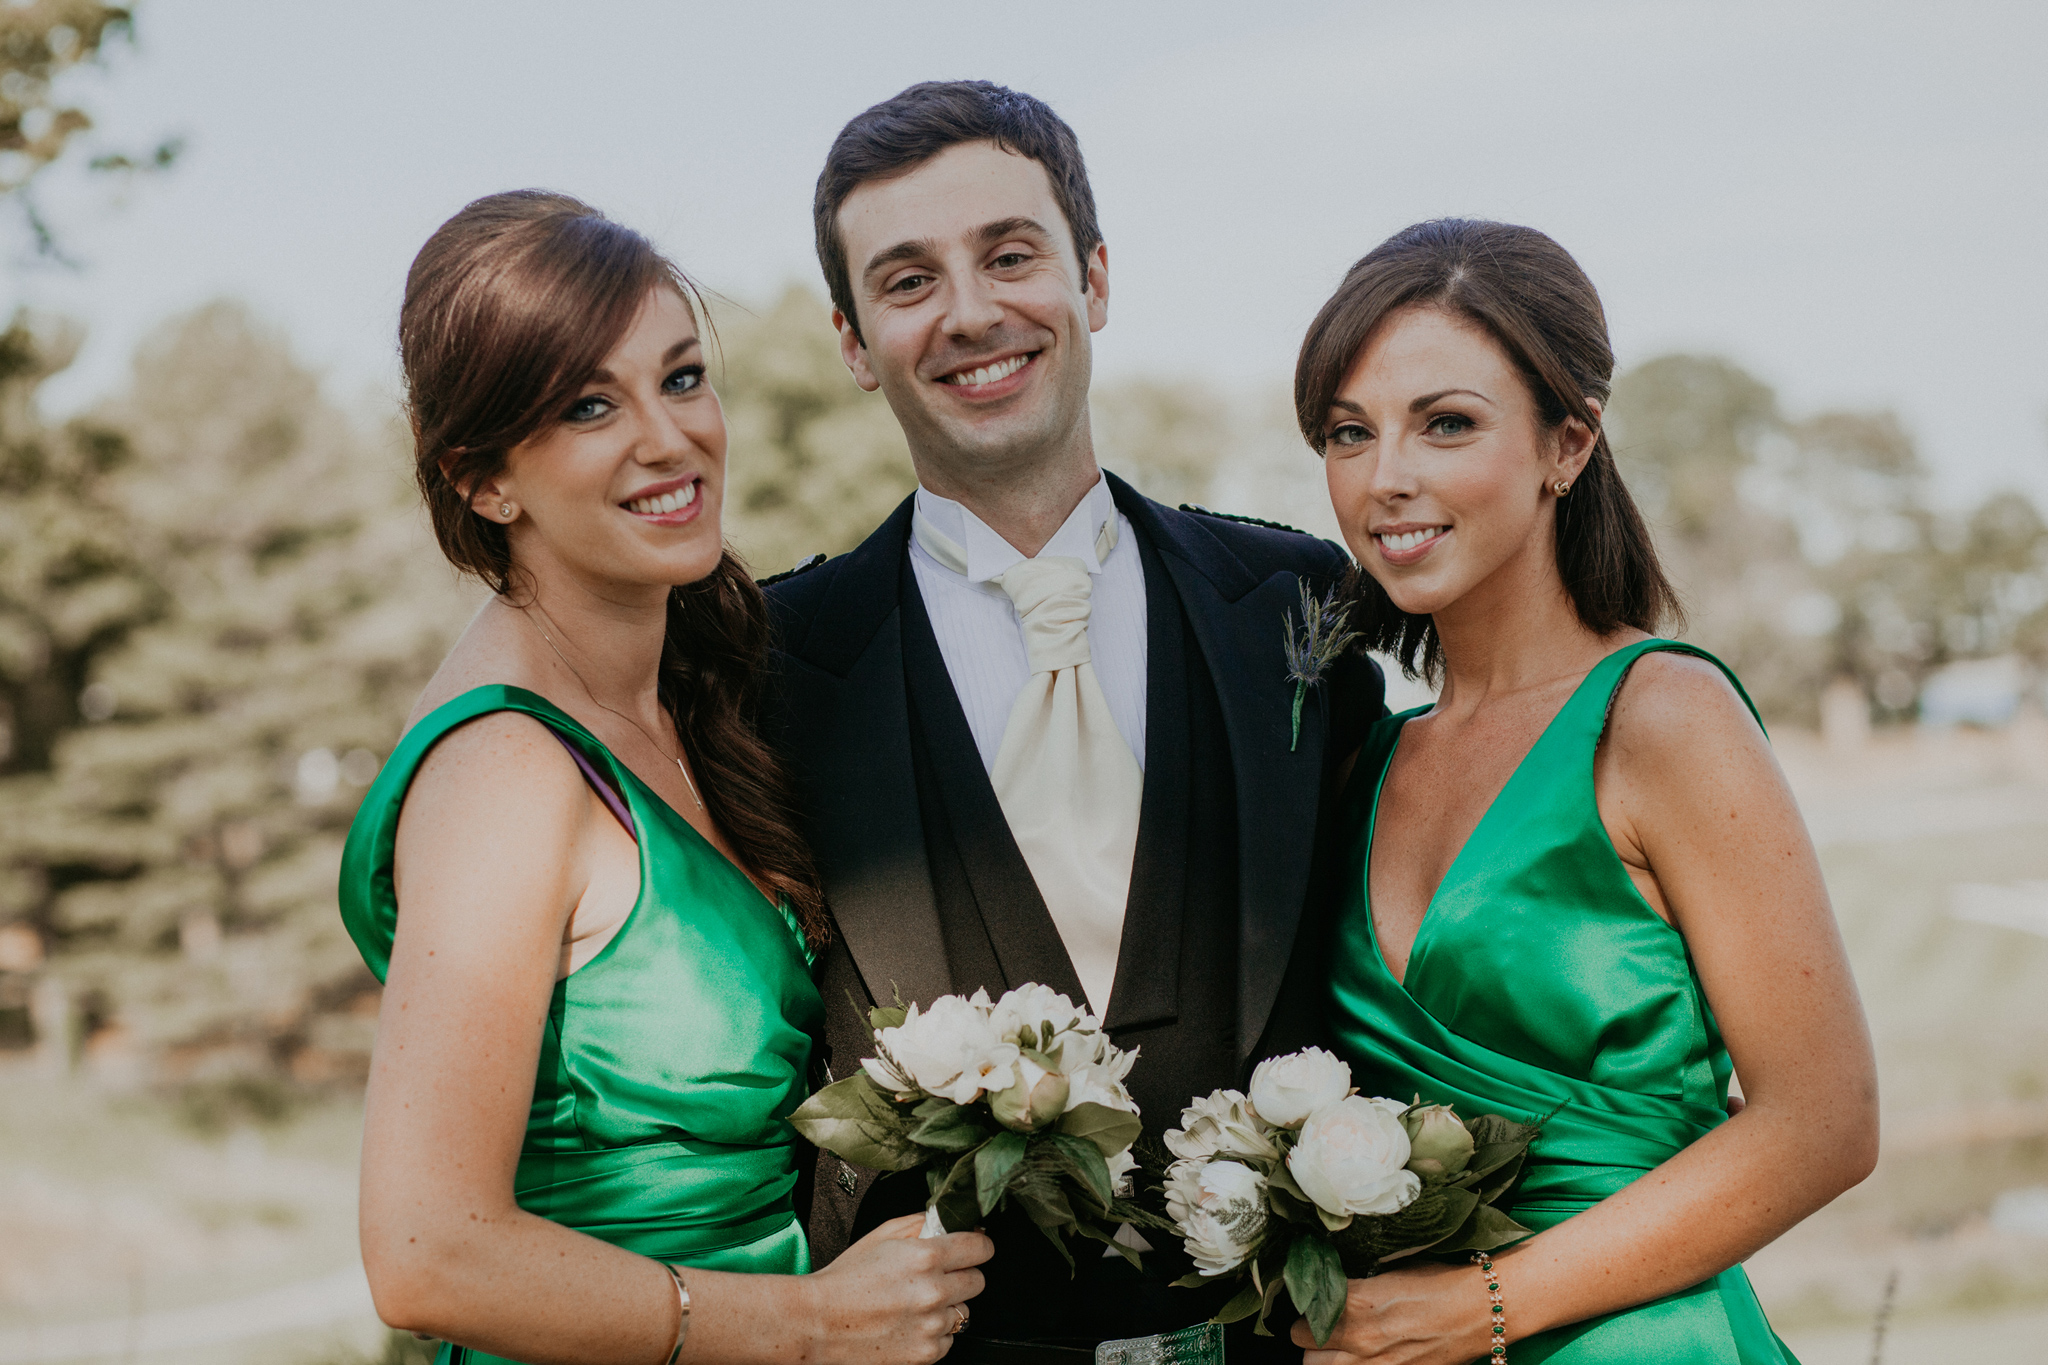 Family portraits at wedding groom with sisters